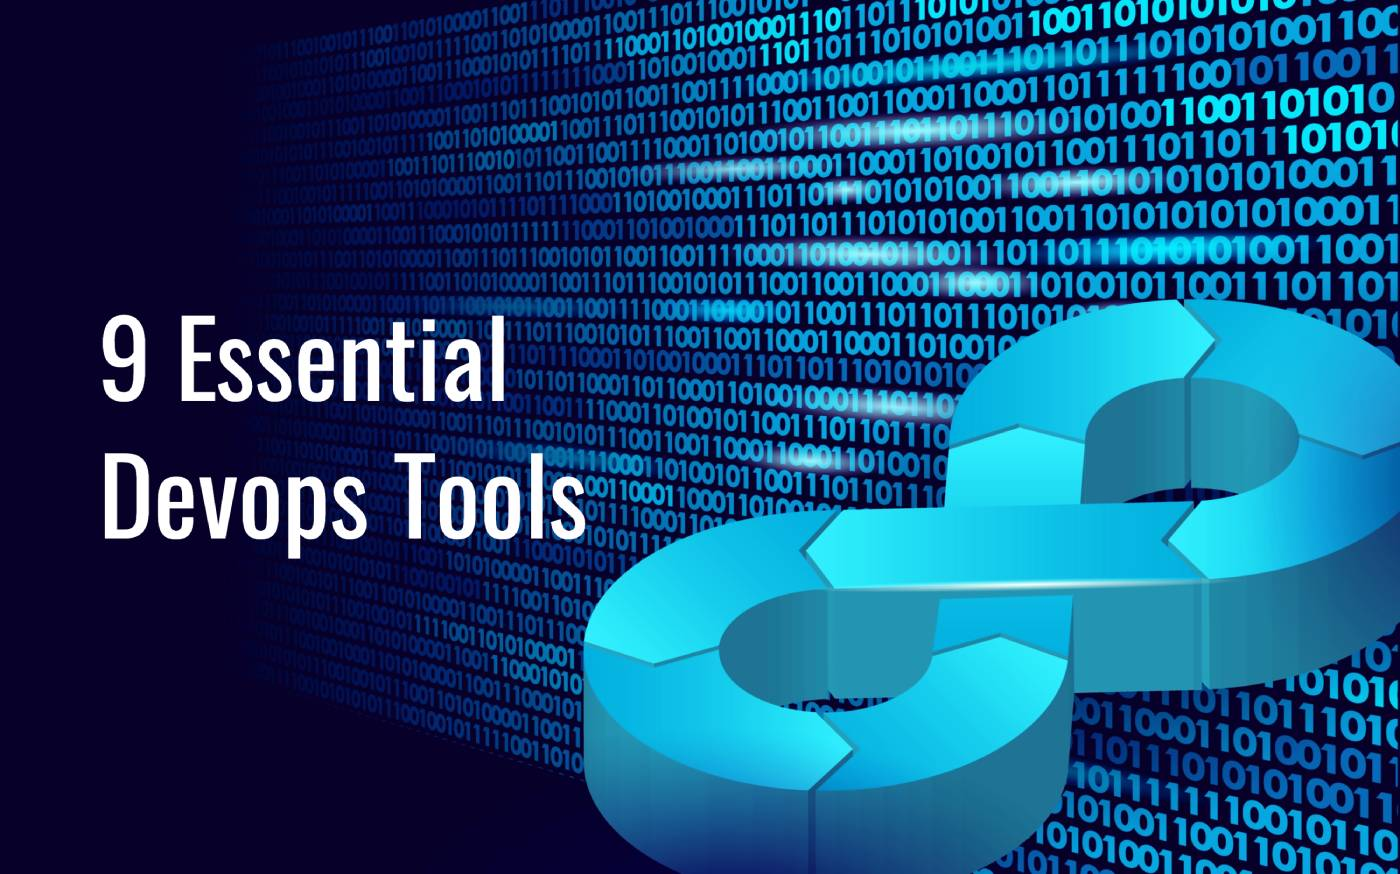 9 Essential DevOps Tools for 2021